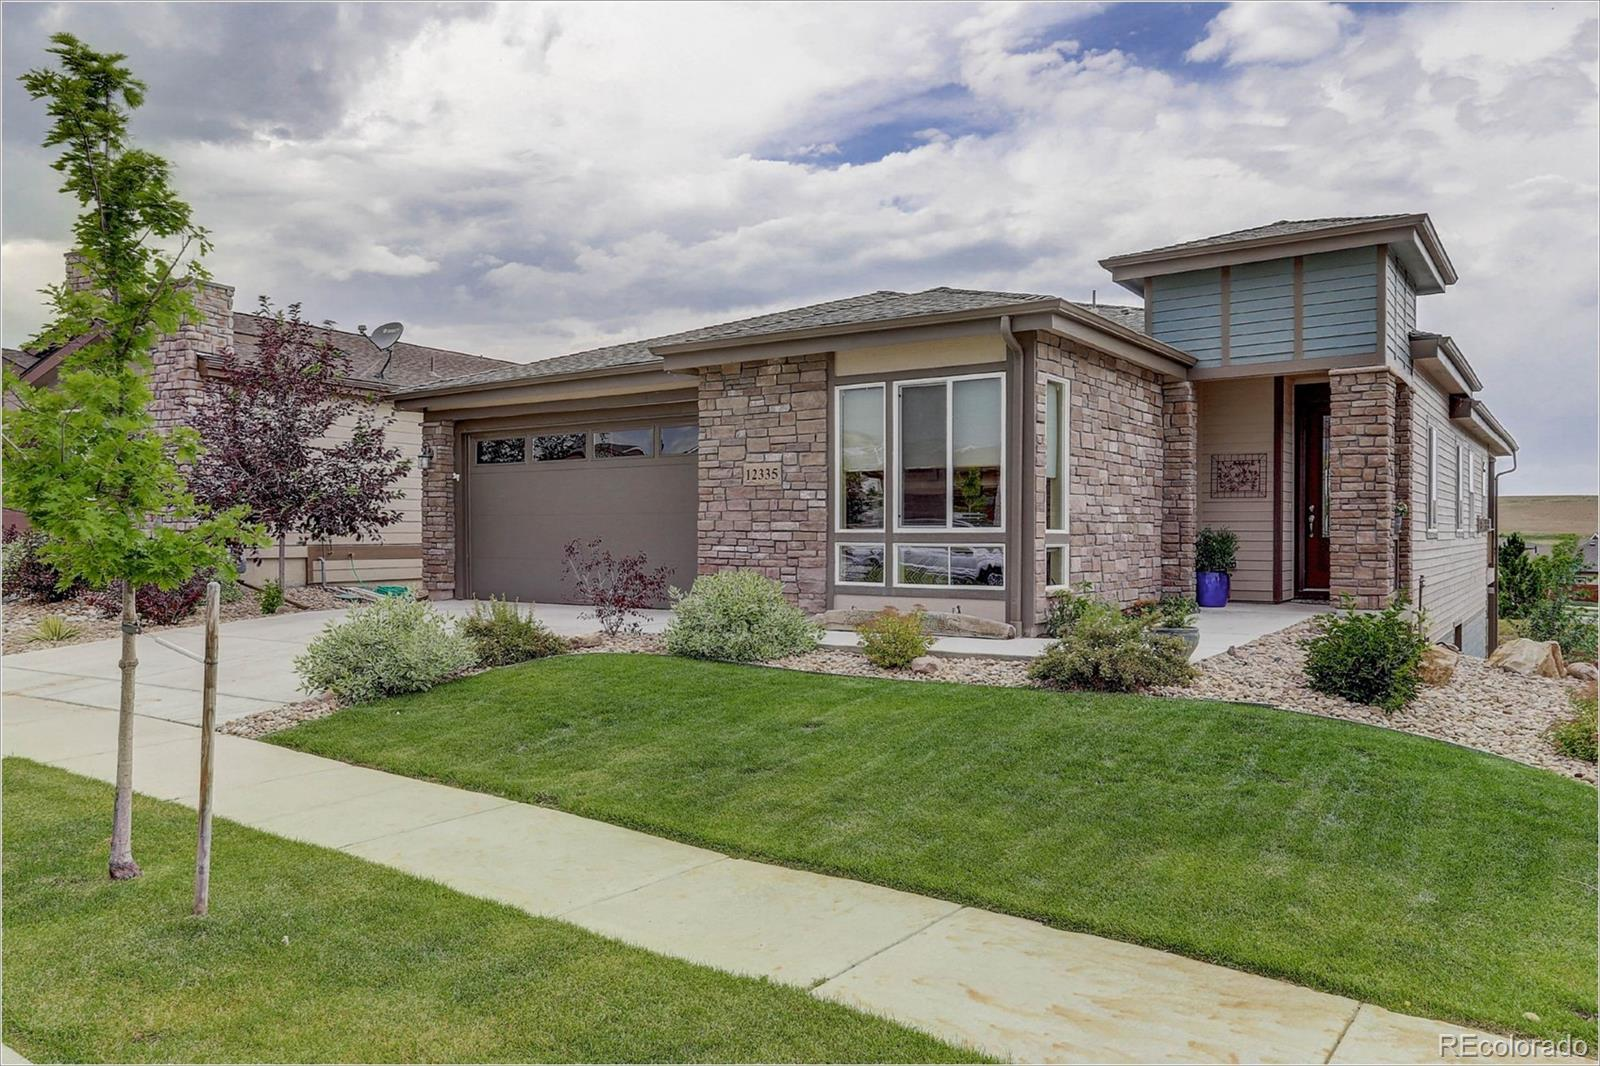 12335 Sandstone Court, Broomfield, CO 80021 - Broomfield, CO real estate listing